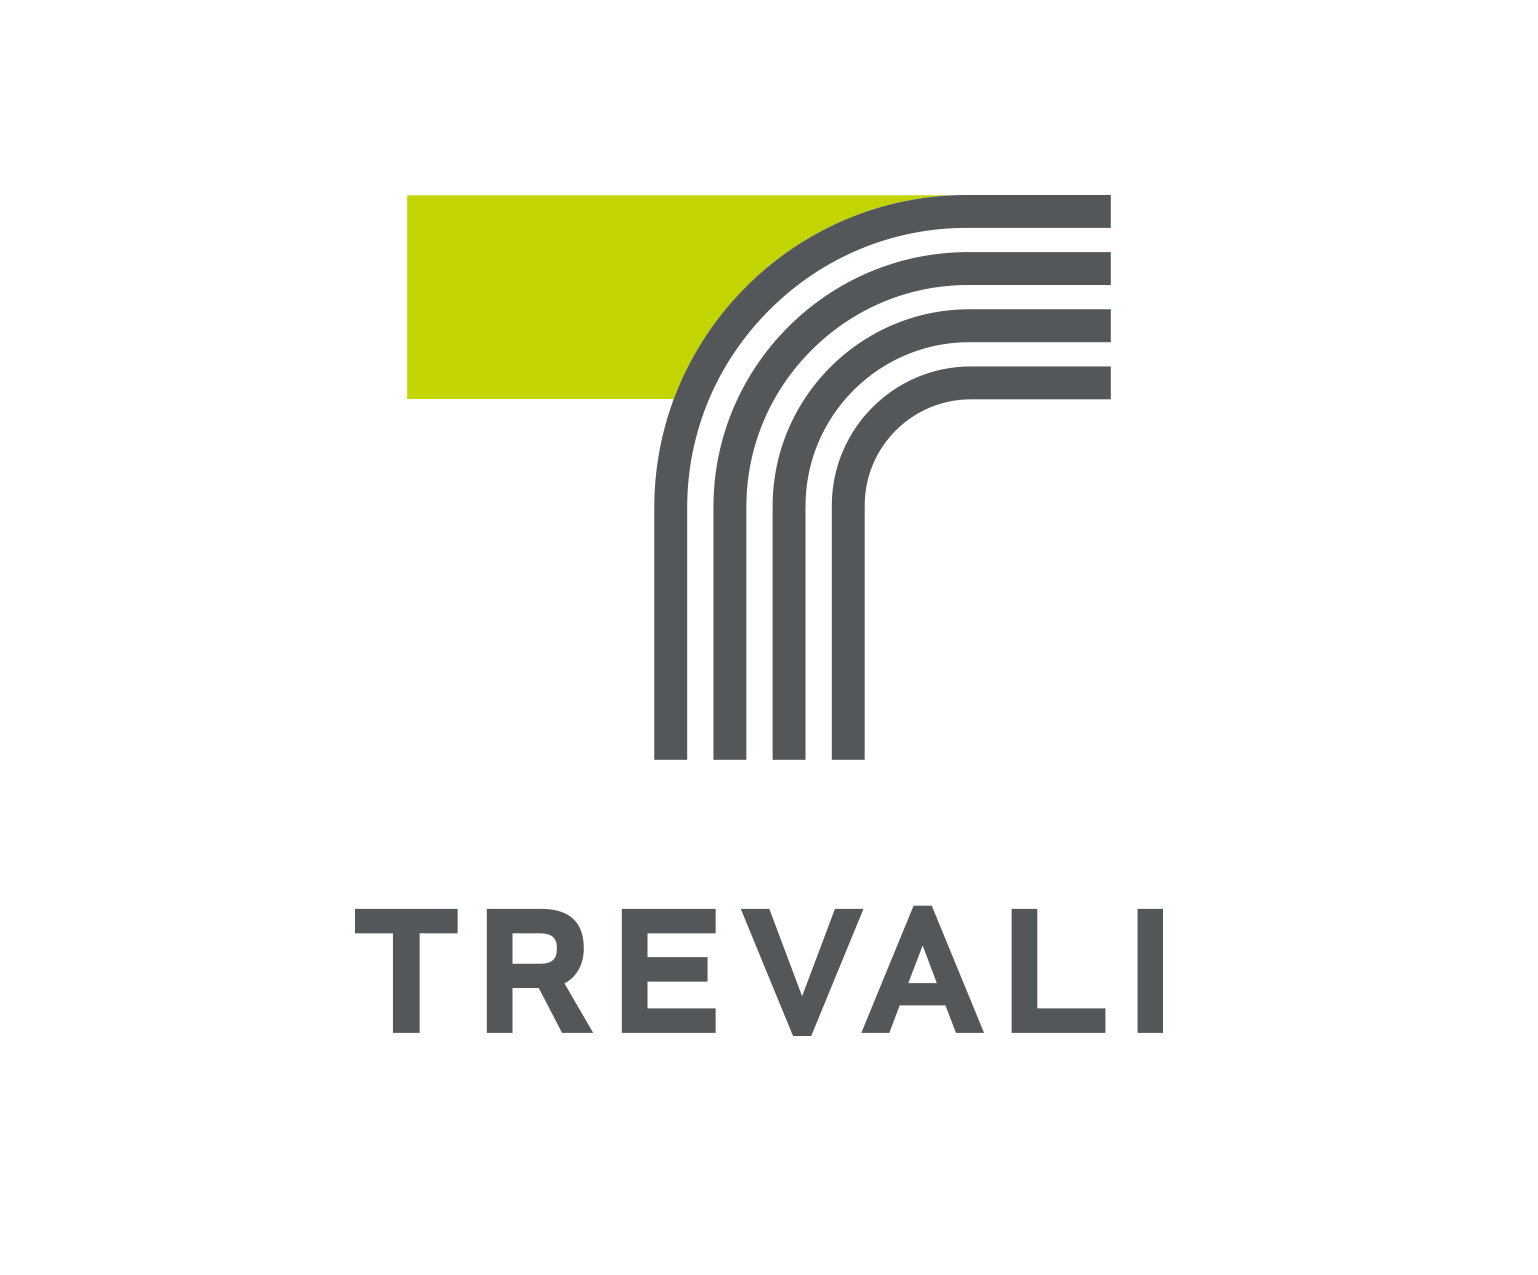 Trevali Announces Renewal of Normal Course Issuer Bid